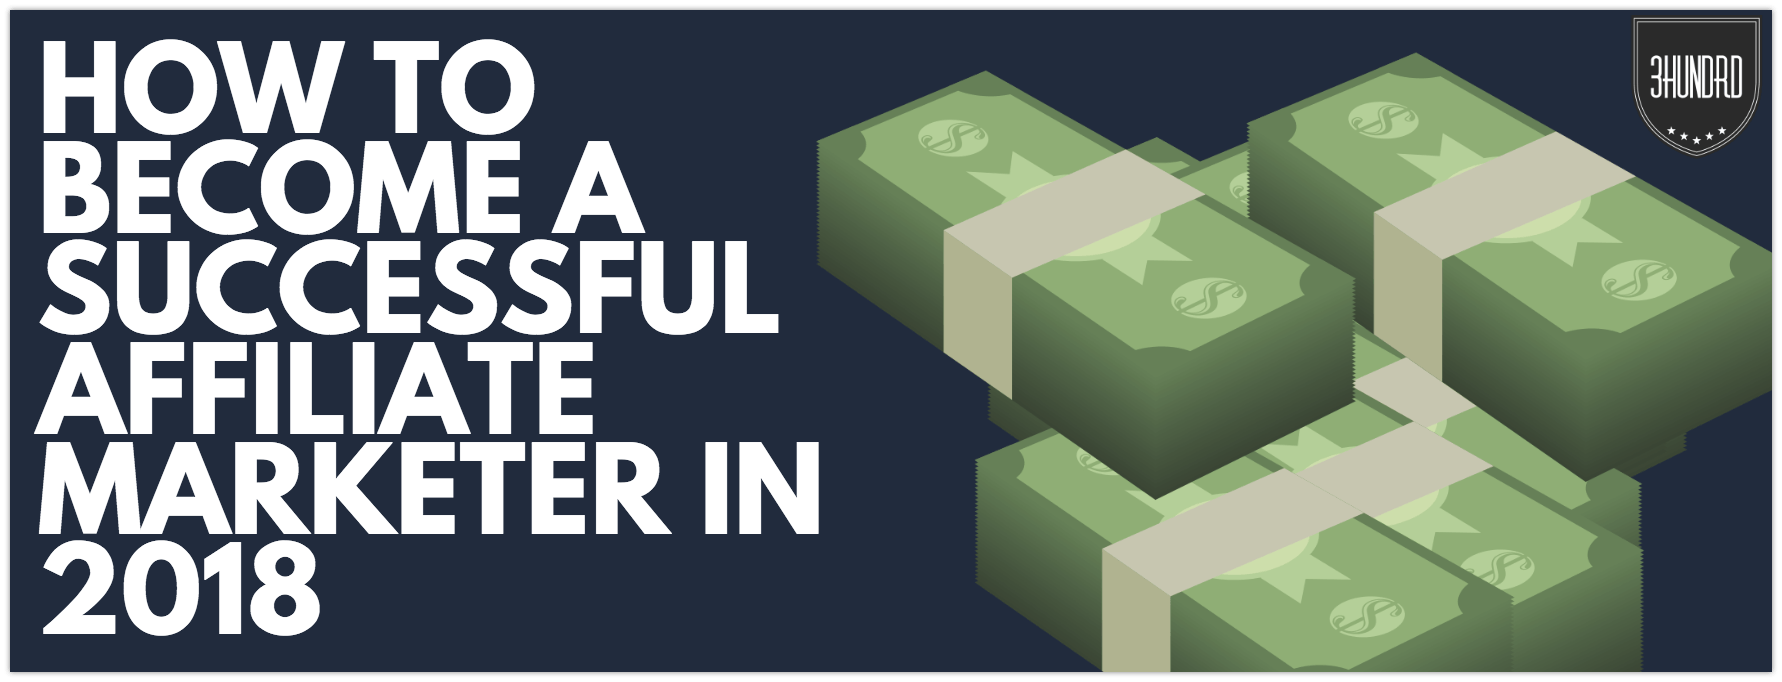 how to become a successful affiliate marketer in 2018